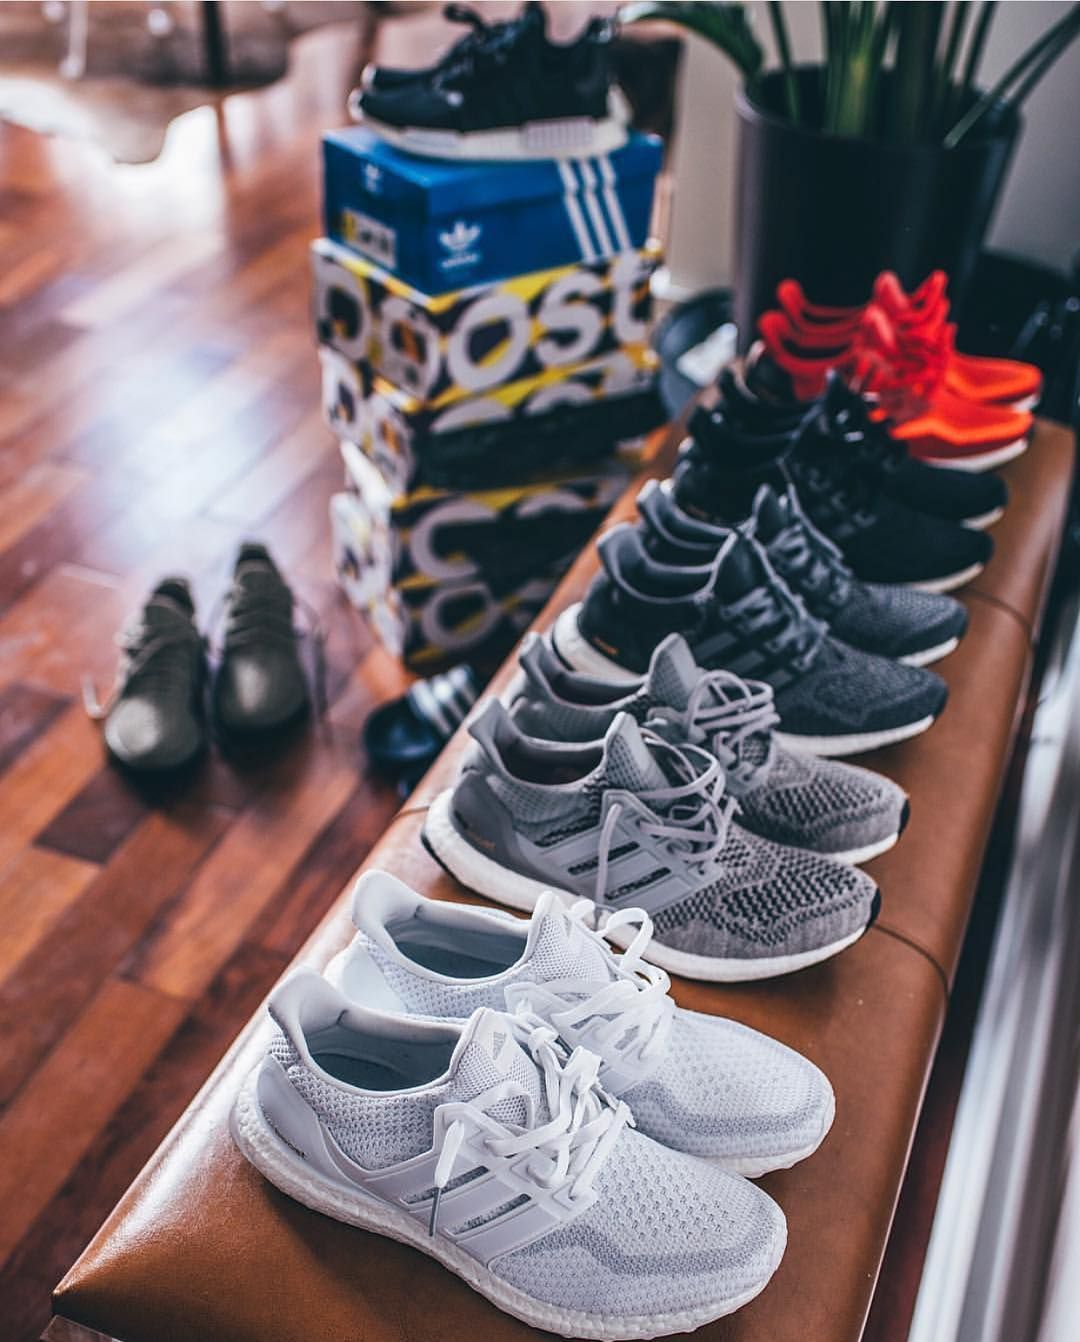 66c48b306ac9 The Complete Beginners Guide To Sneakers. Adidas Ultra Boost. Adidas Ultra  Boost Adidas Shoes